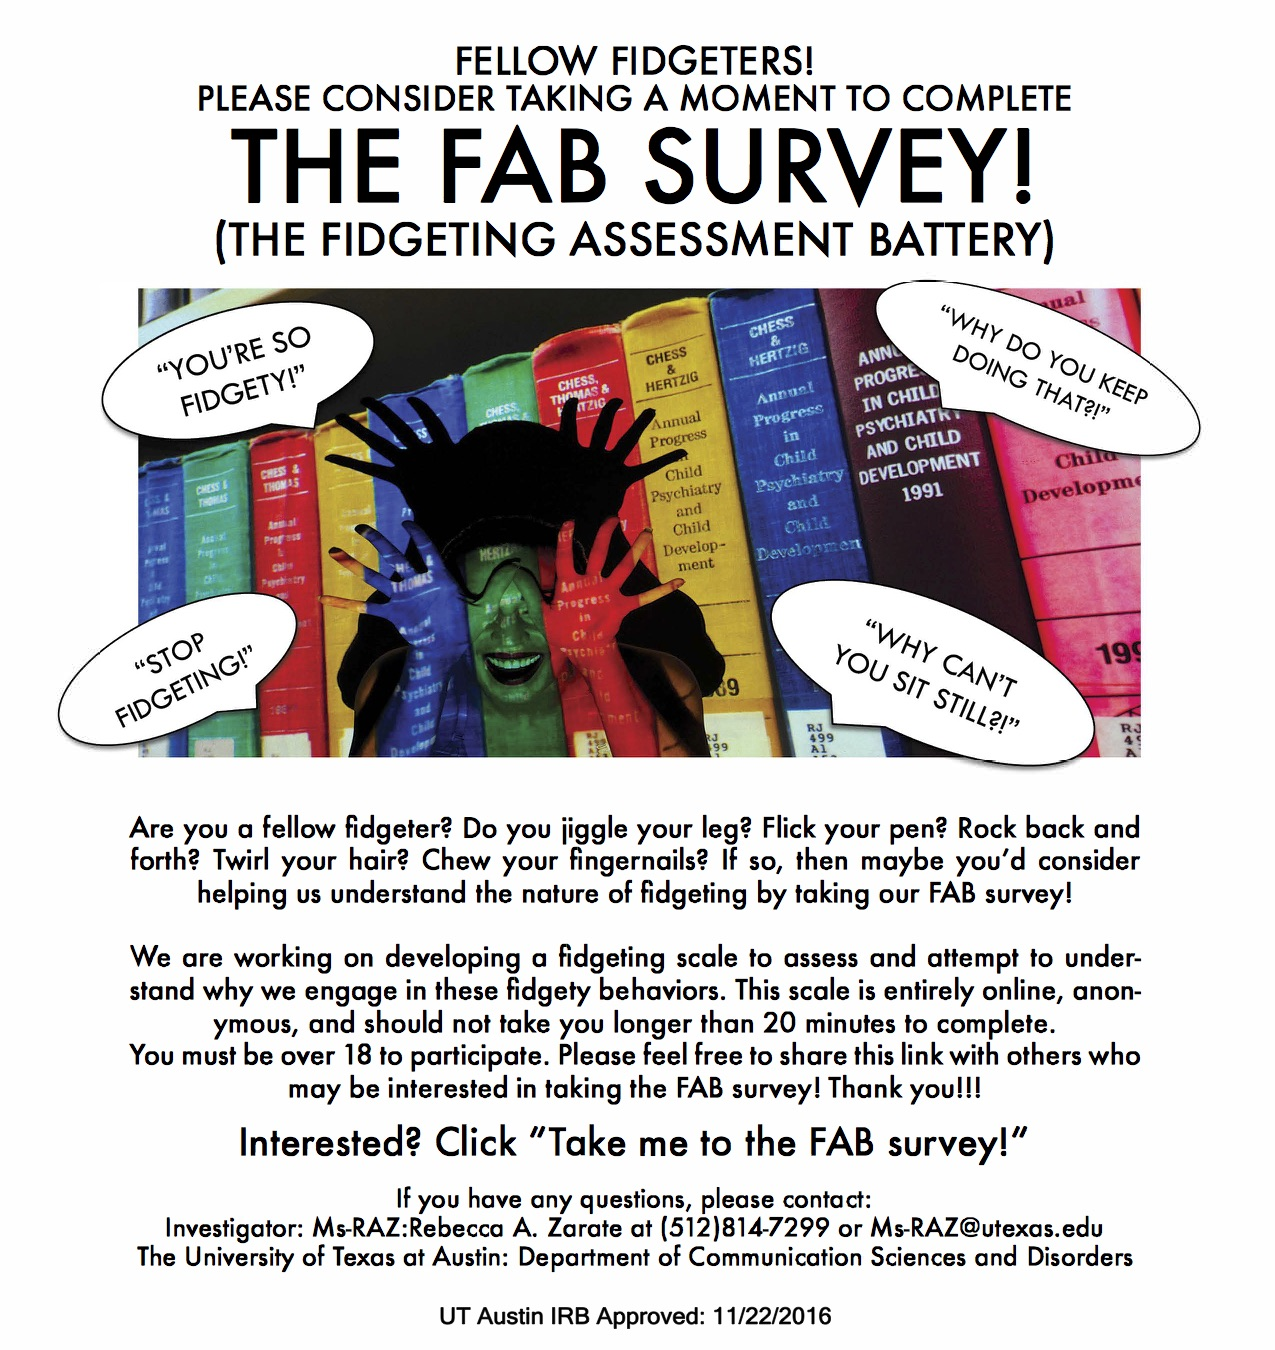 Fidget Scale Survey FAB